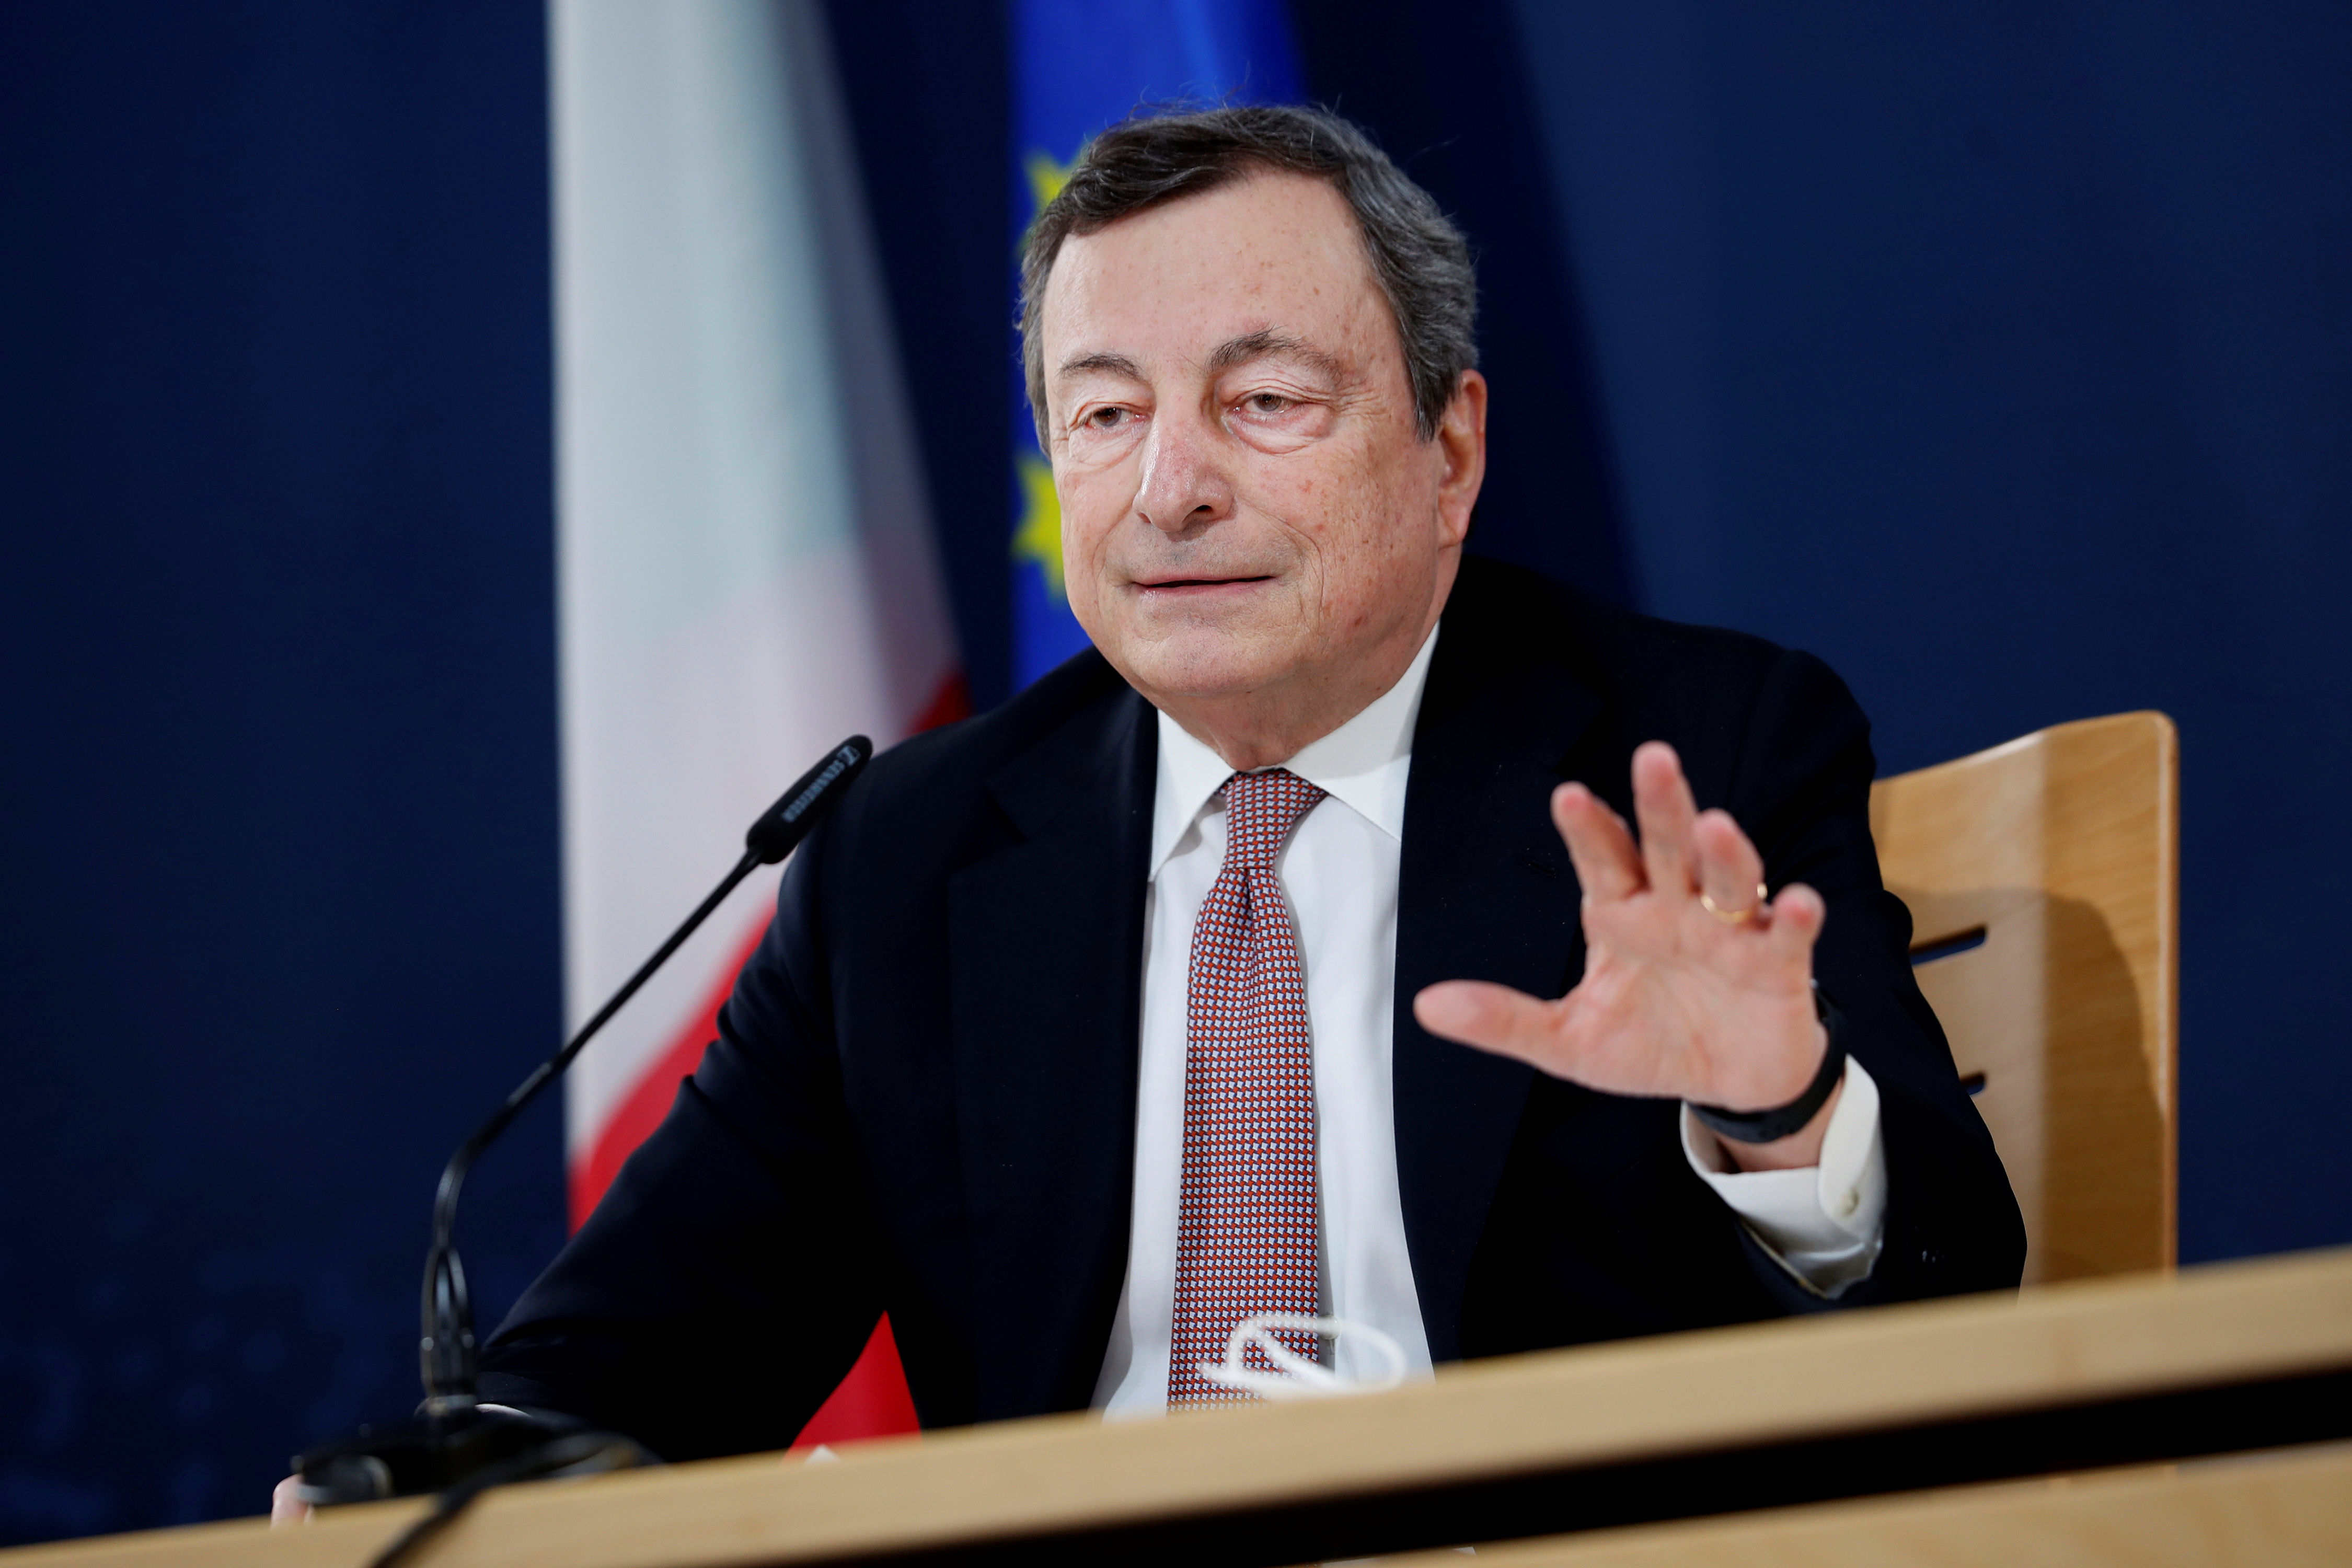 Italian Prime Minister Mario Draghi speaks during a media conference in Porto, Portugal, May 8, 2021. Francisco Seco/Pool via REUTERS